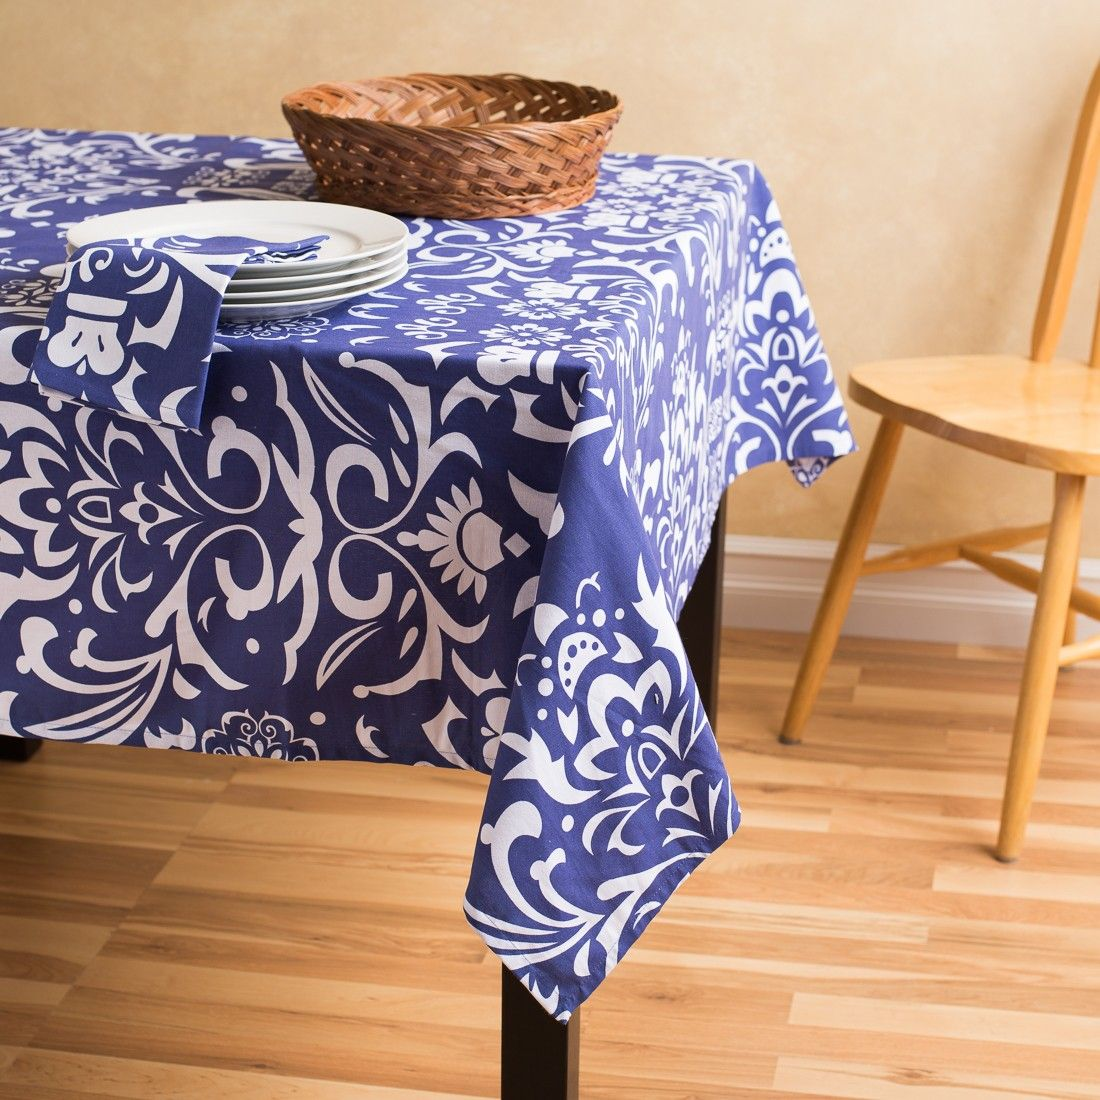 58 X 70 In. Navy Blue U0026 White Rectangular Cotton Vintage Royalty Tablecloth